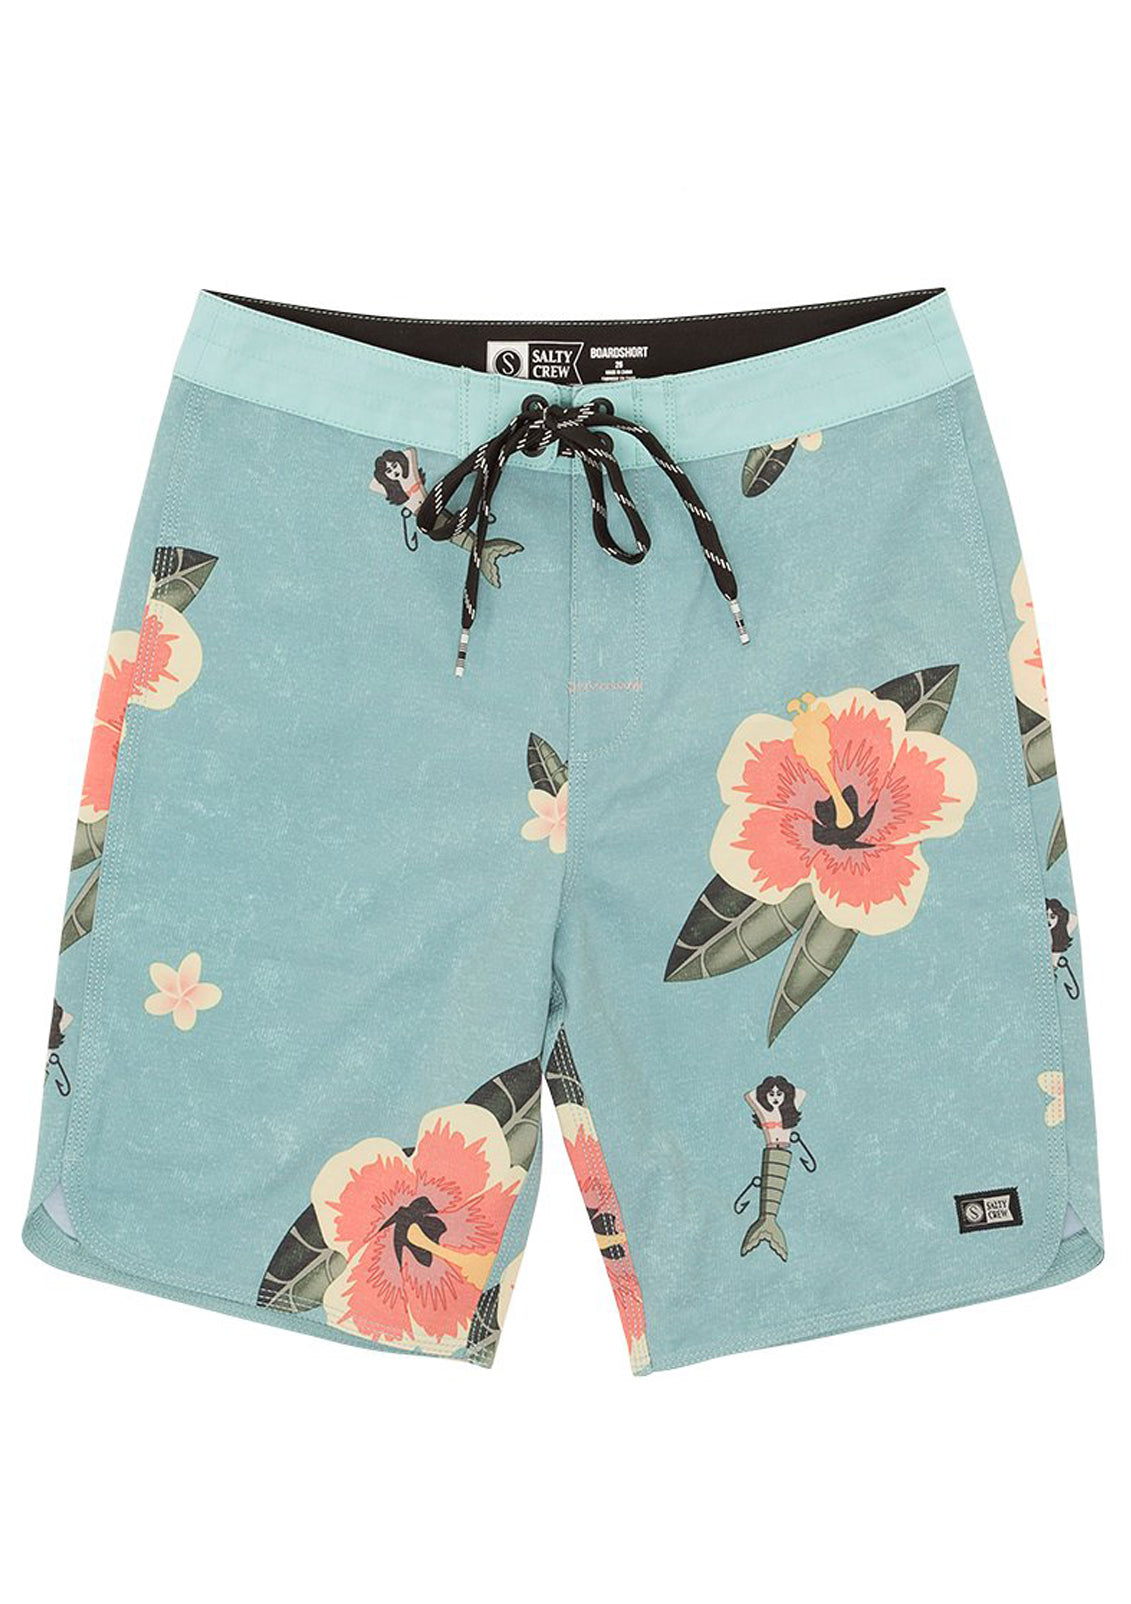 Salty Crew Boy's Tradewinds Boardshorts